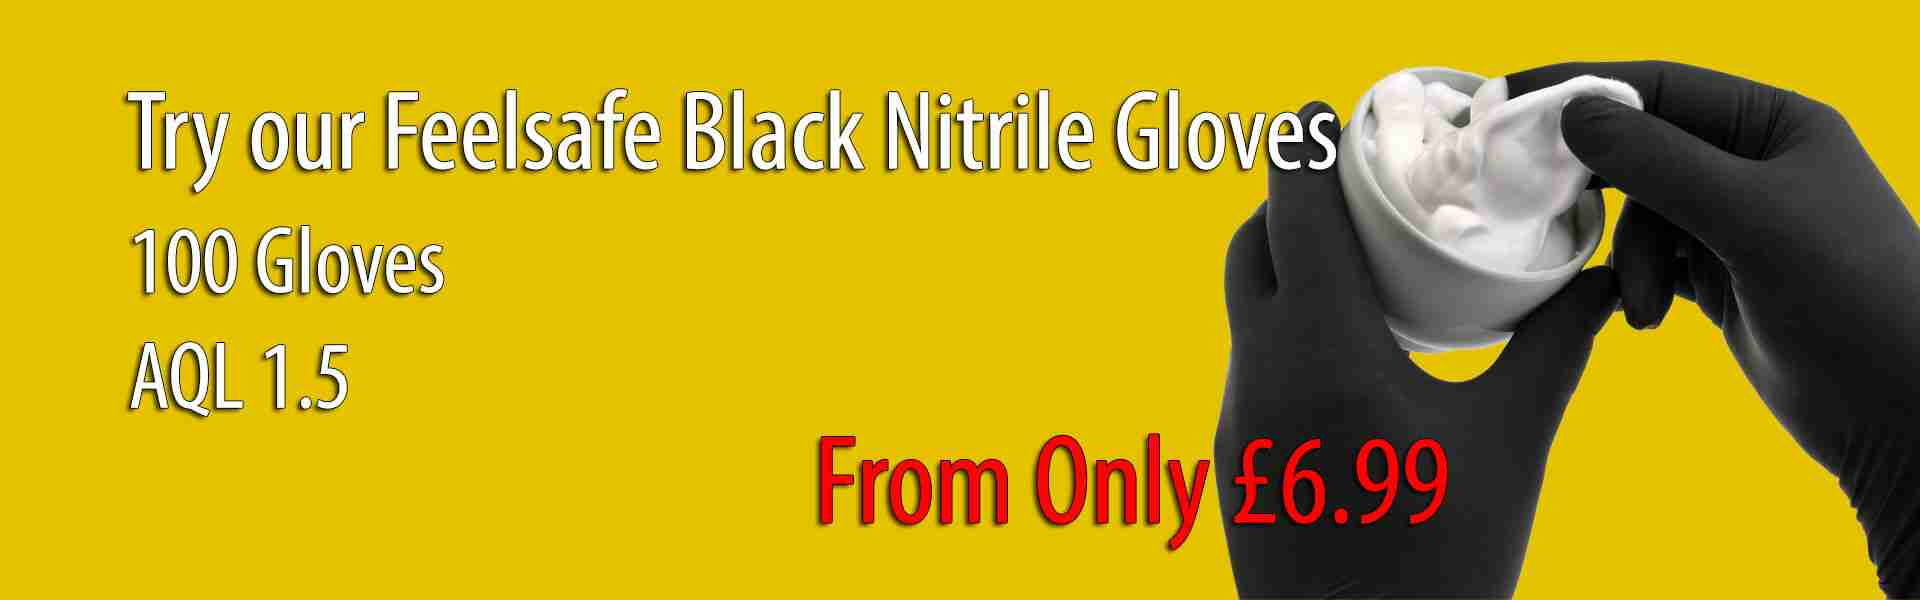 Feelsafe Powder Free Black Nitrile Gloves